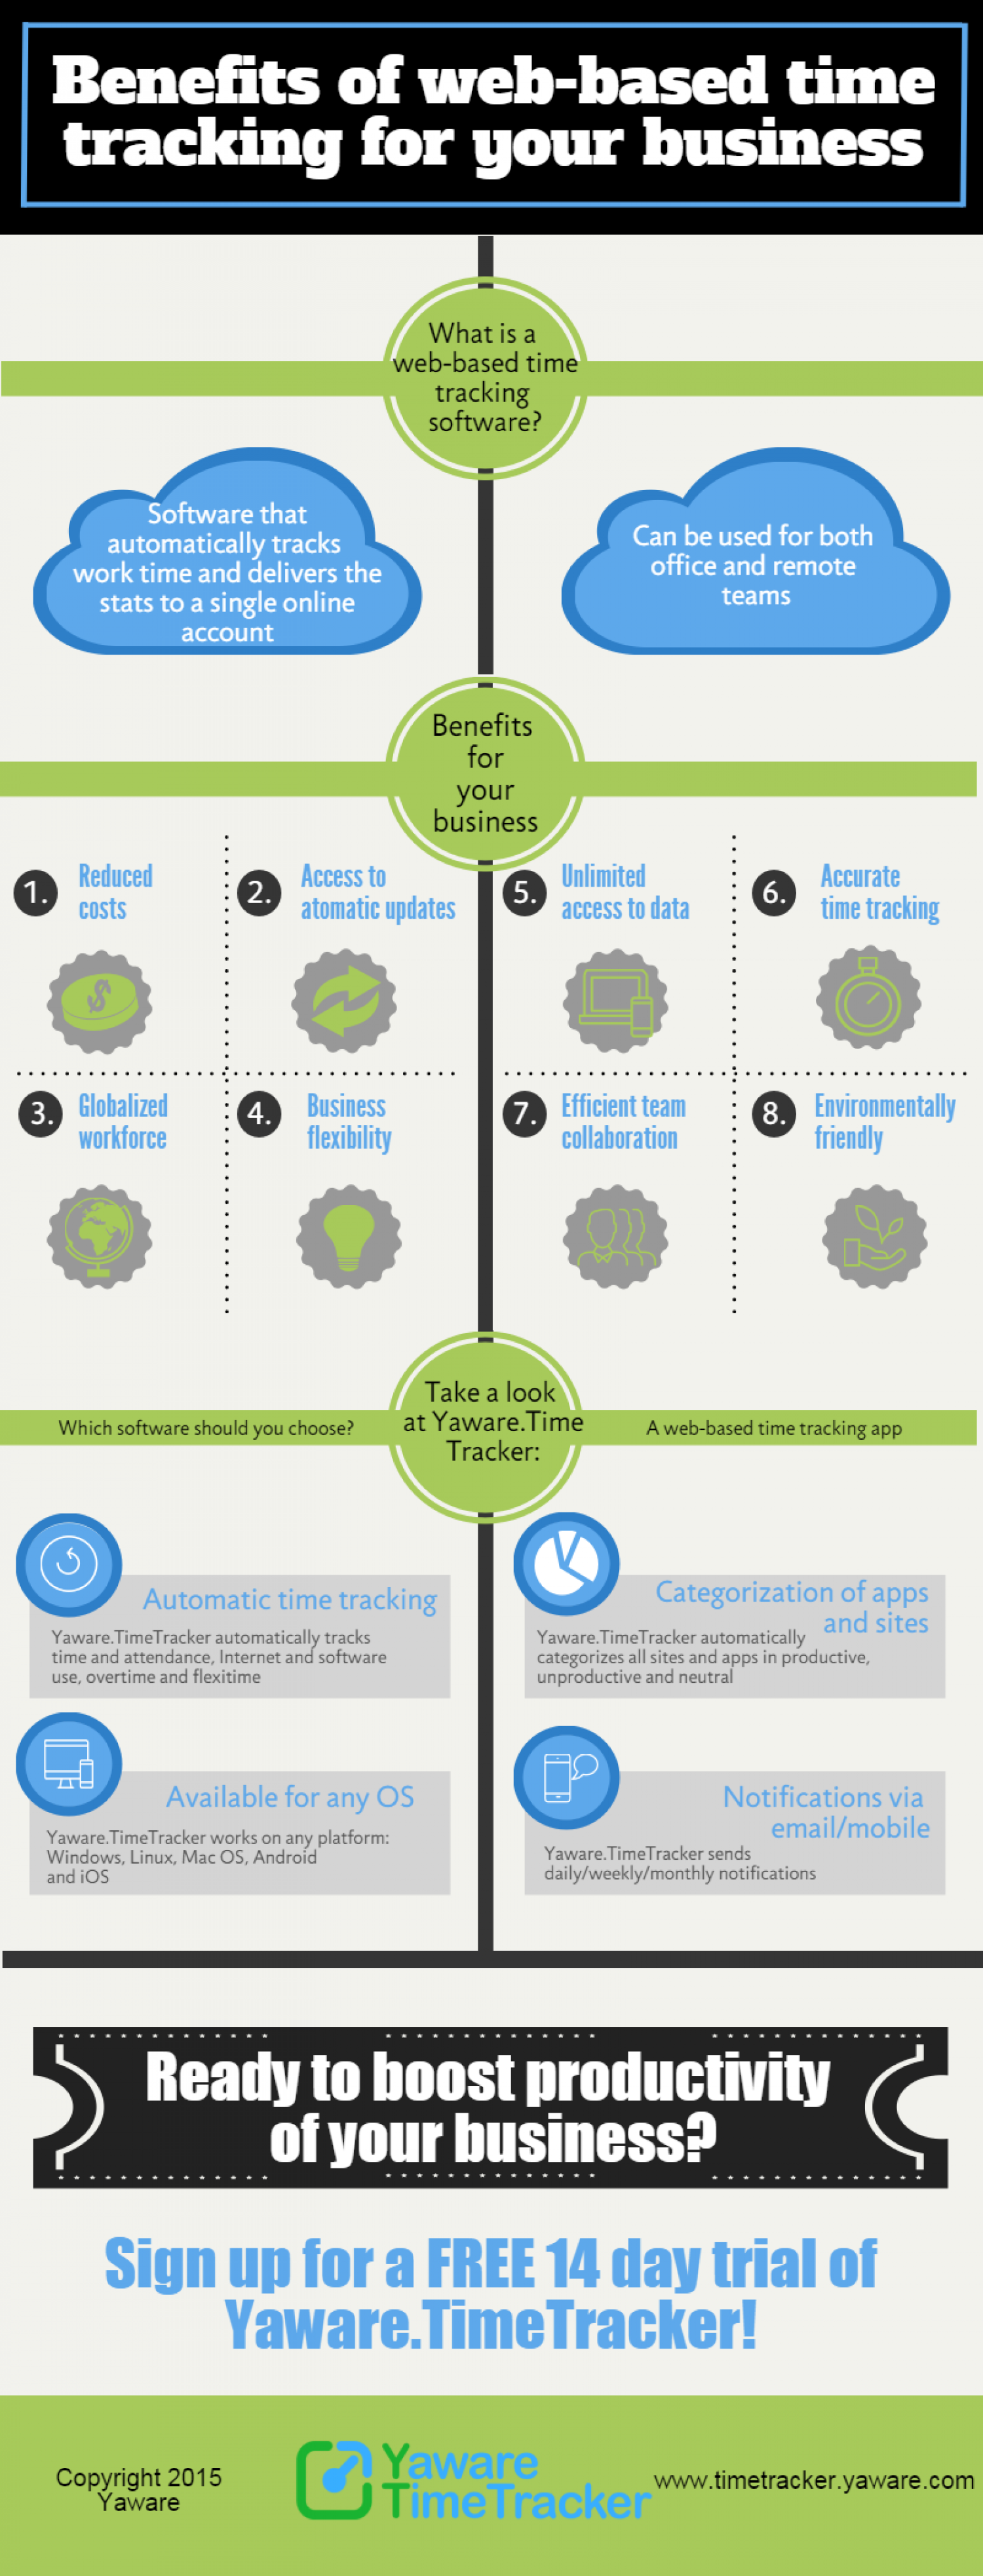 Benefits of web-based time tracking for your business Infographic